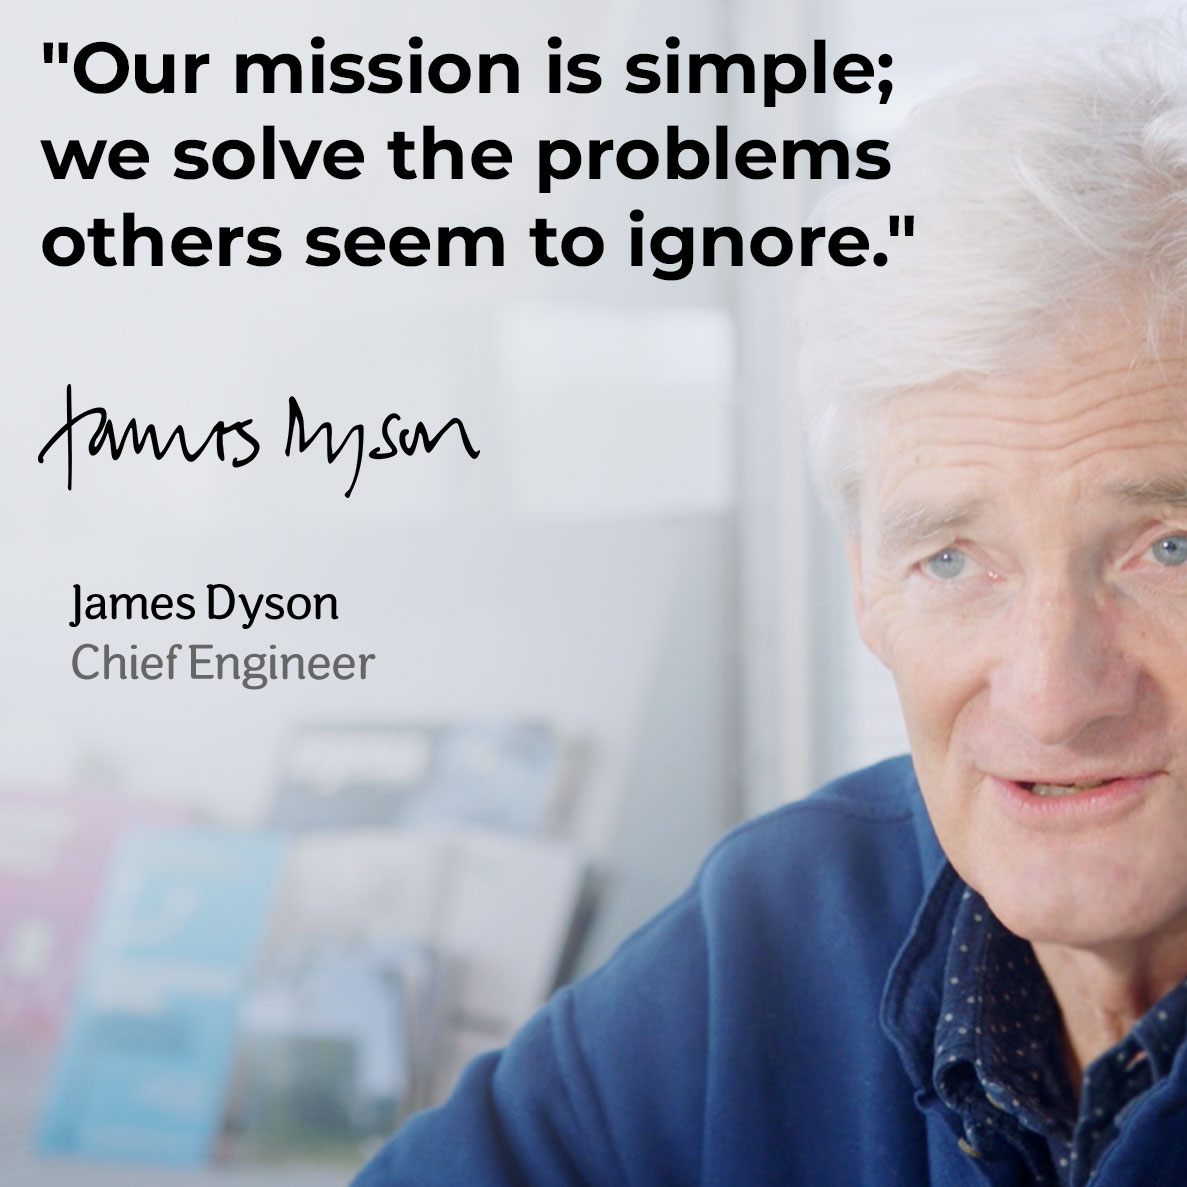 Our mission is simple; we solve the problems others seem to ignore. James Dyson; Chief Engineer